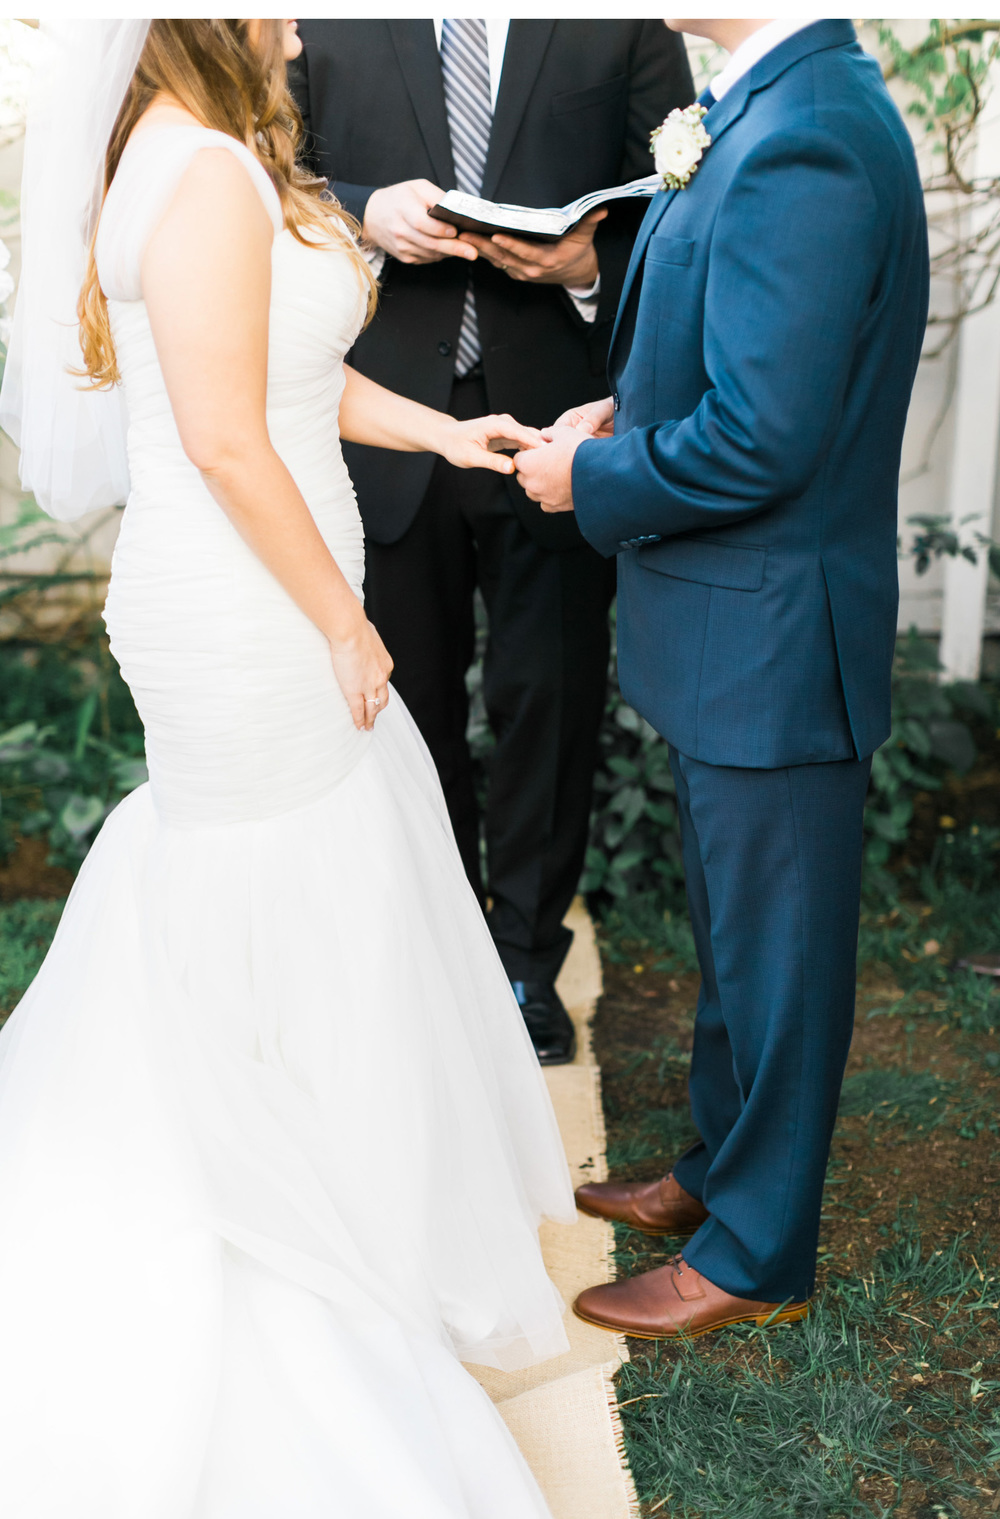 Santa-Barbara-Wedding-Natalie-Schutt-Photography_02.jpg